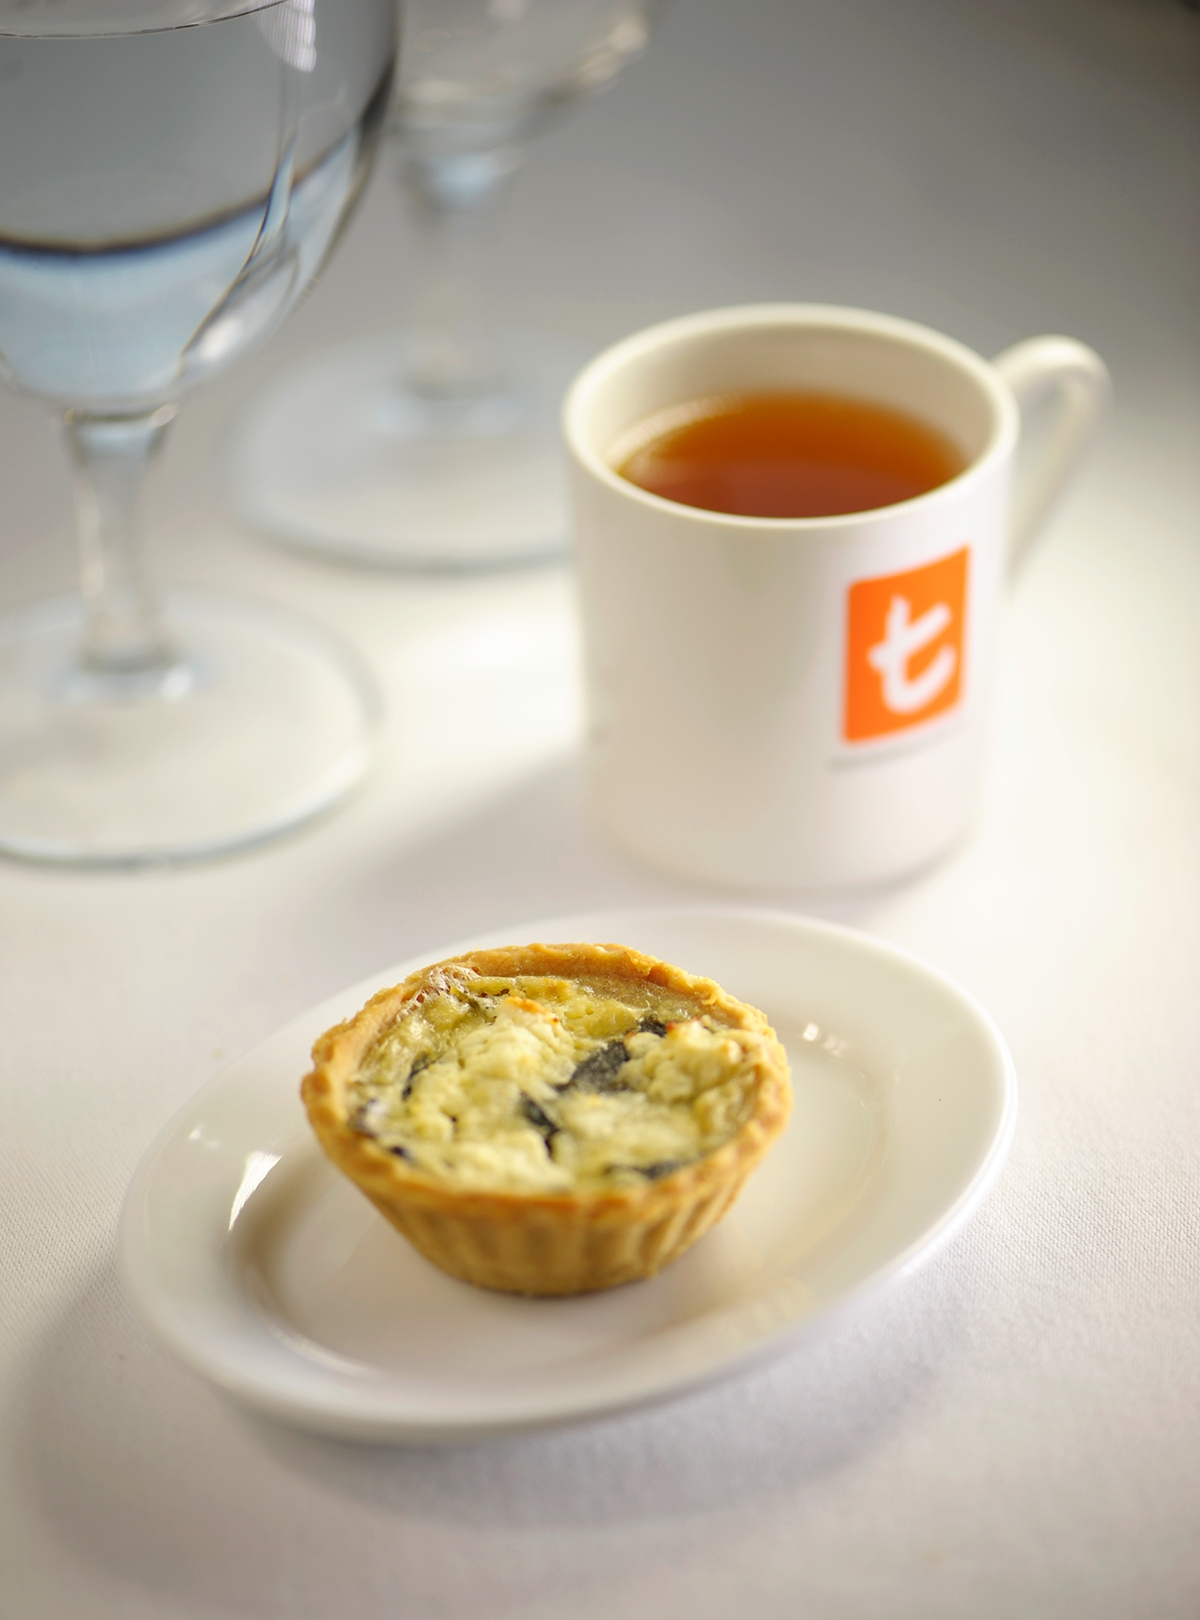 Feta cheese in Spinach pie with Fragrant Jasmine Green tea